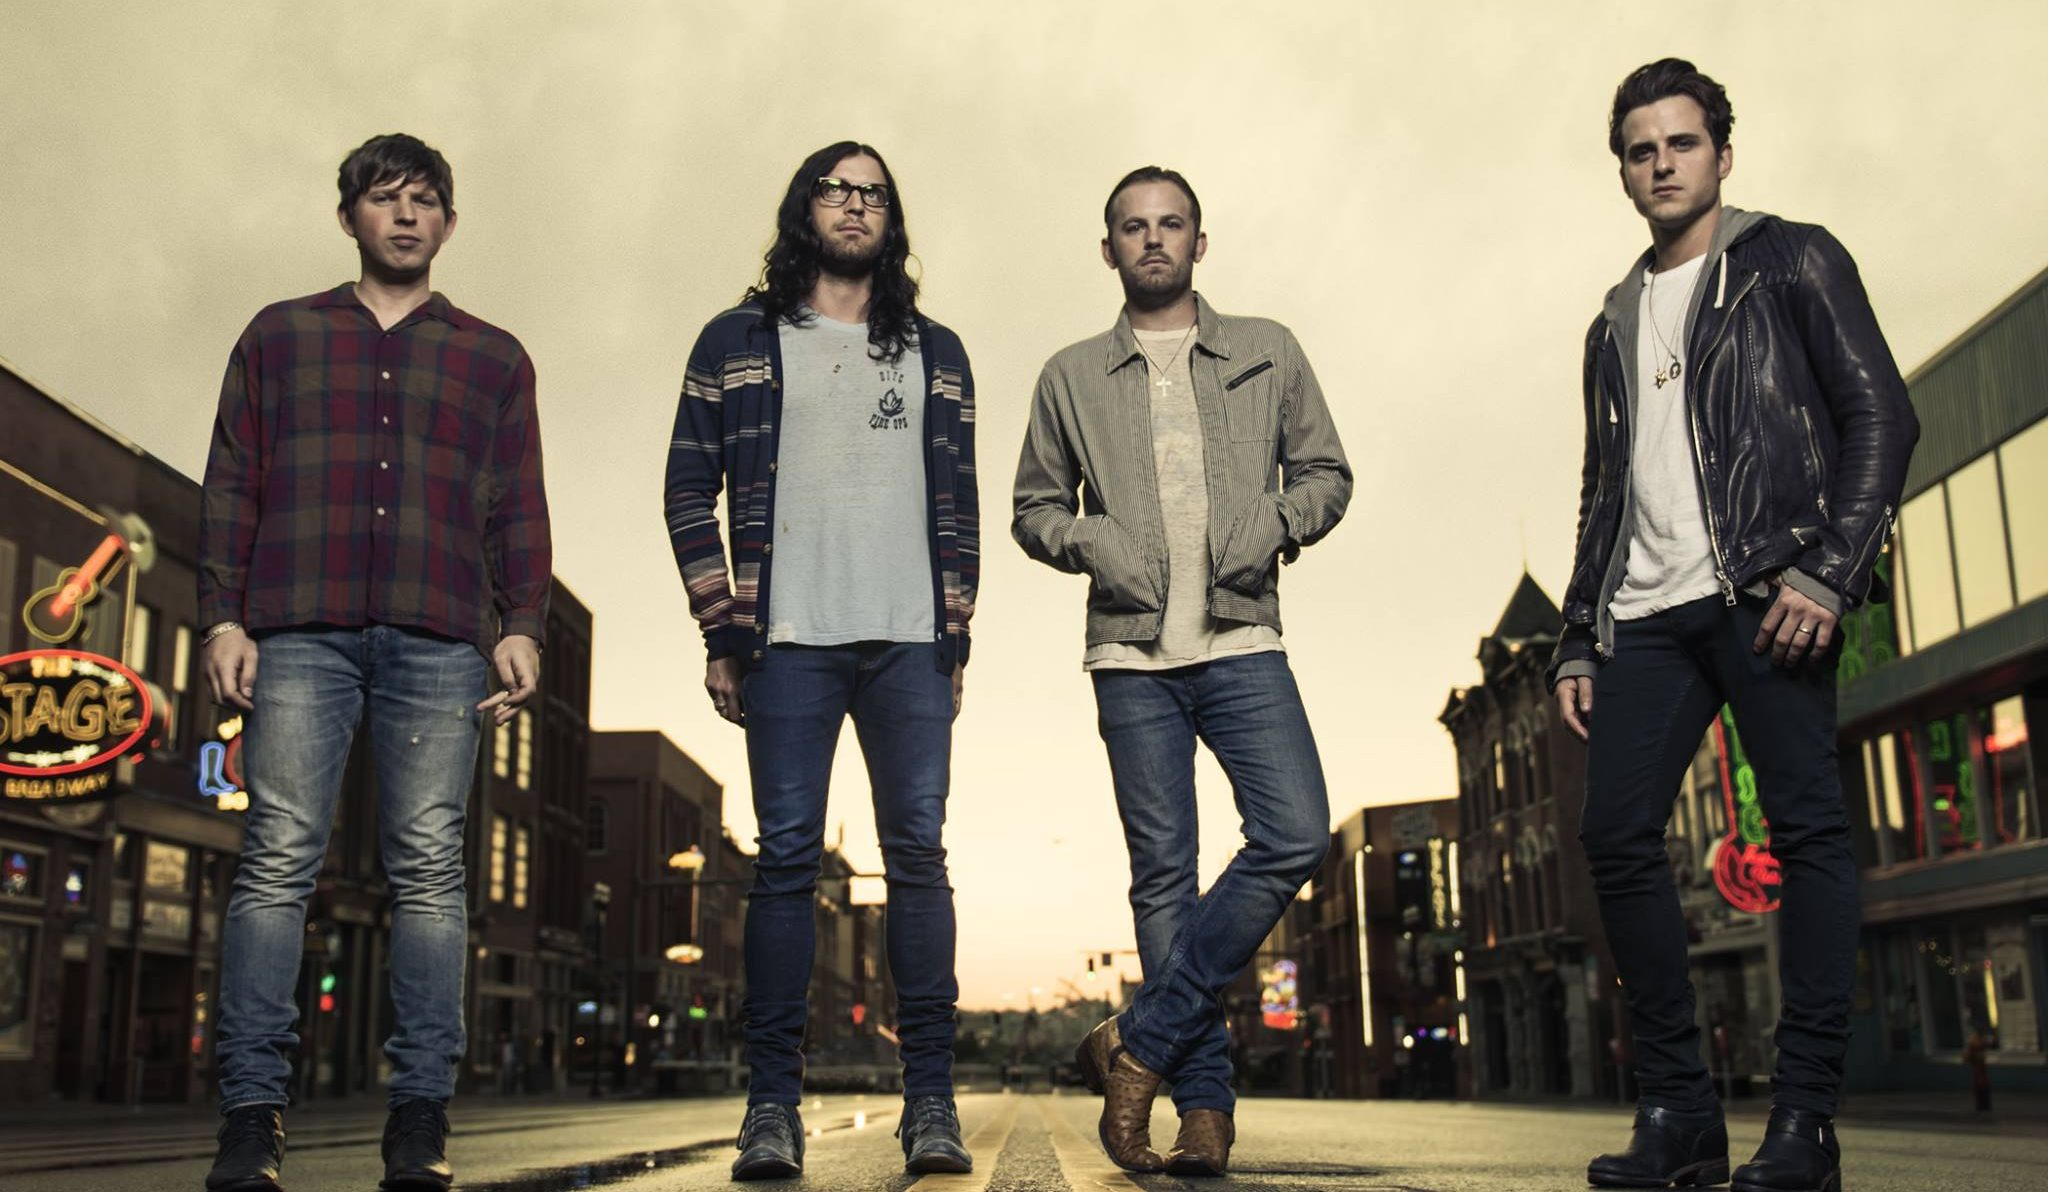 Kings of Leon are coming back to Toronto in January